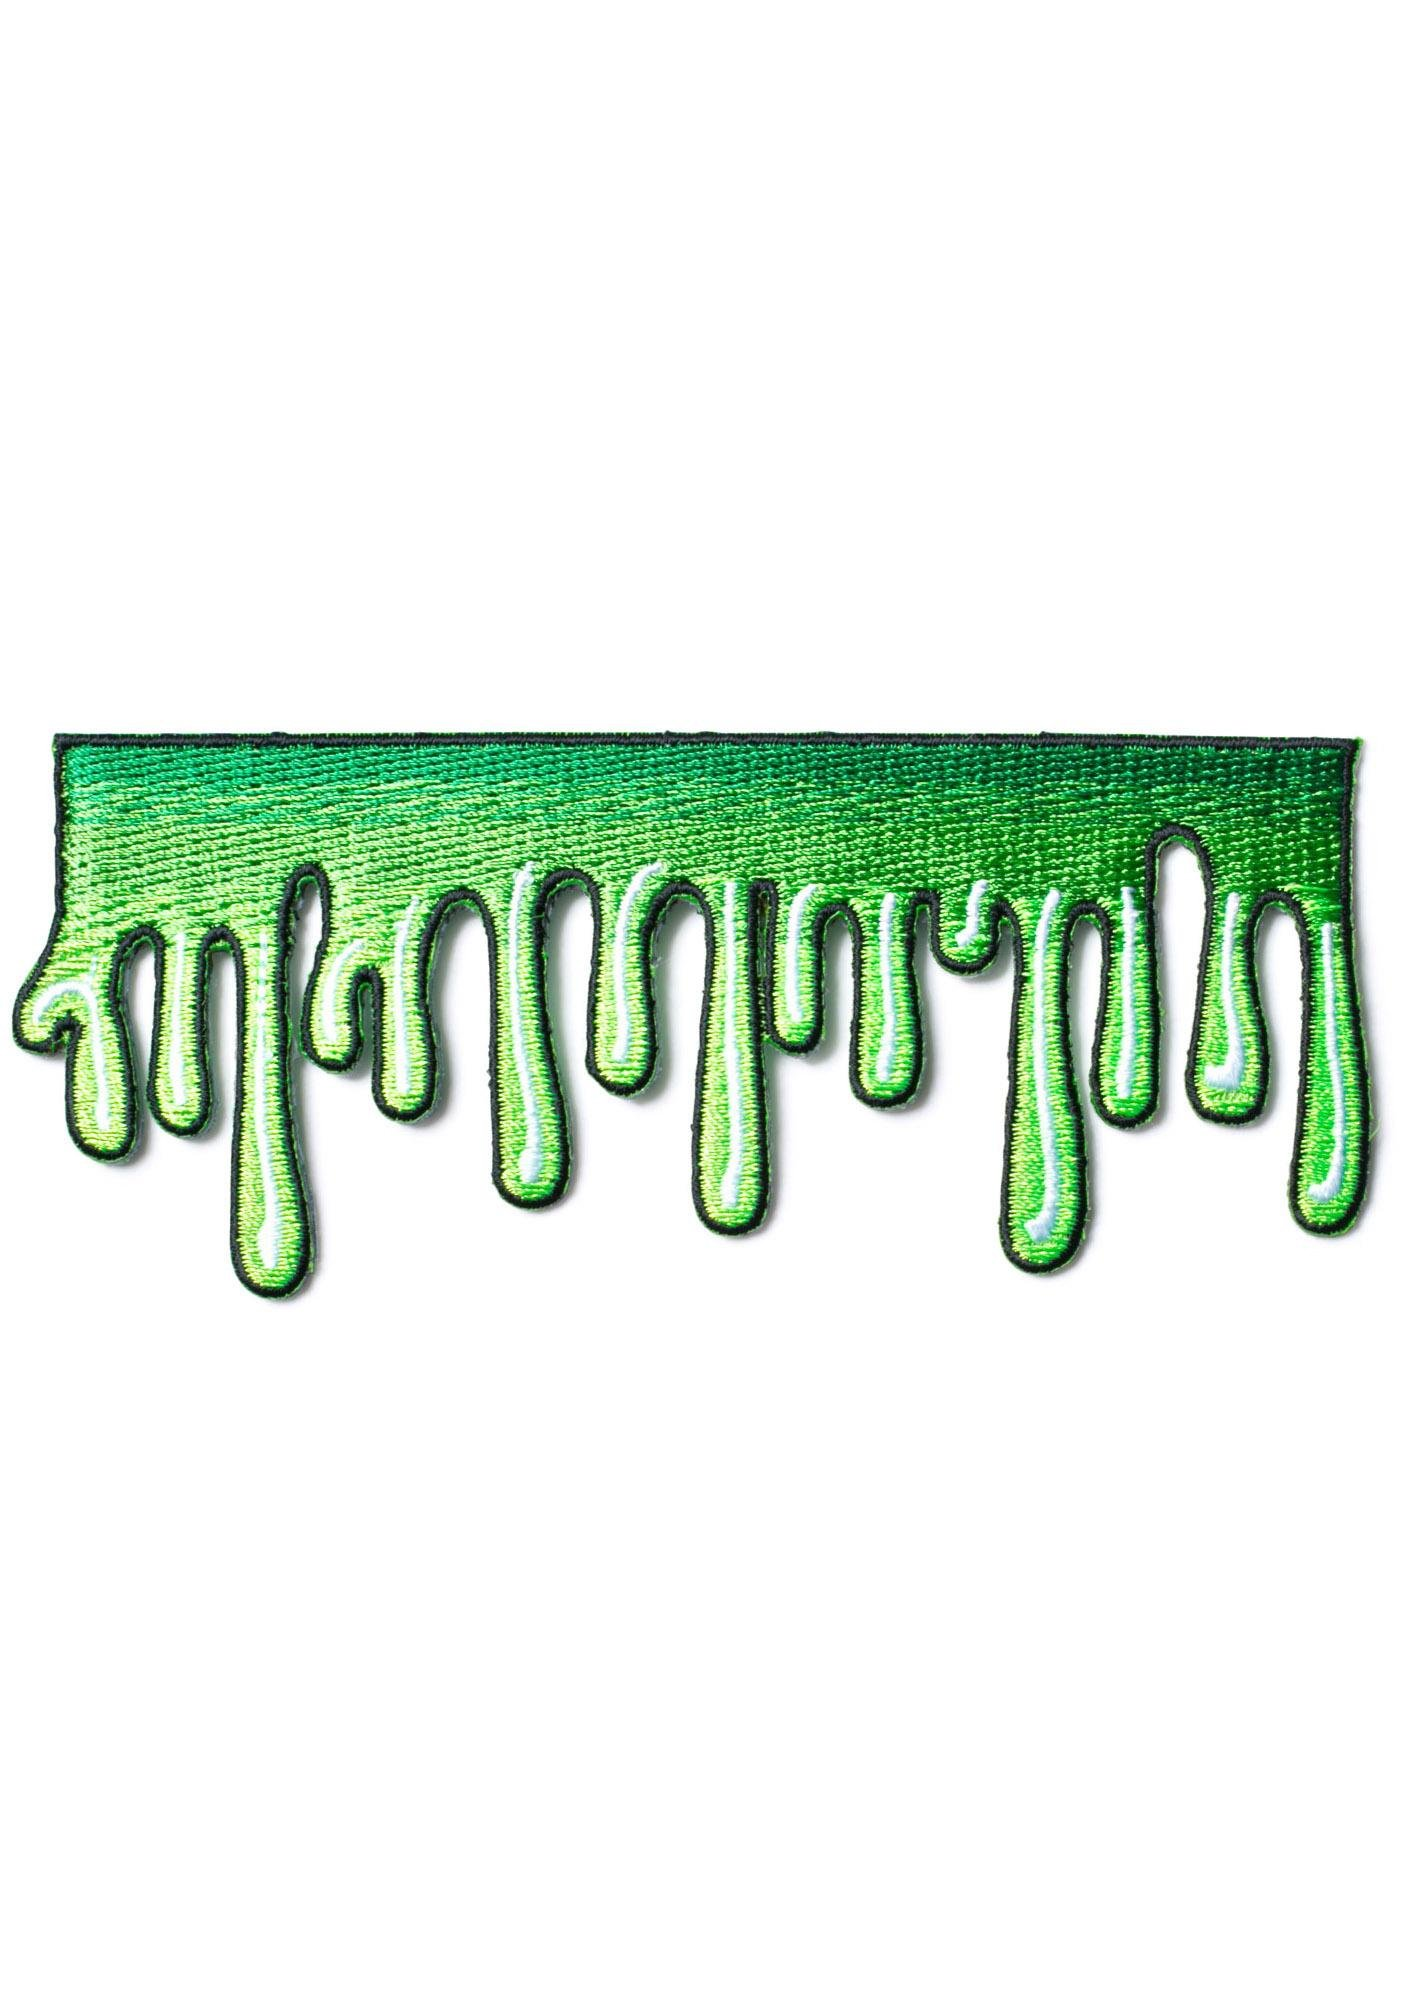 Kreepsville 666 Drippy Slime Patch